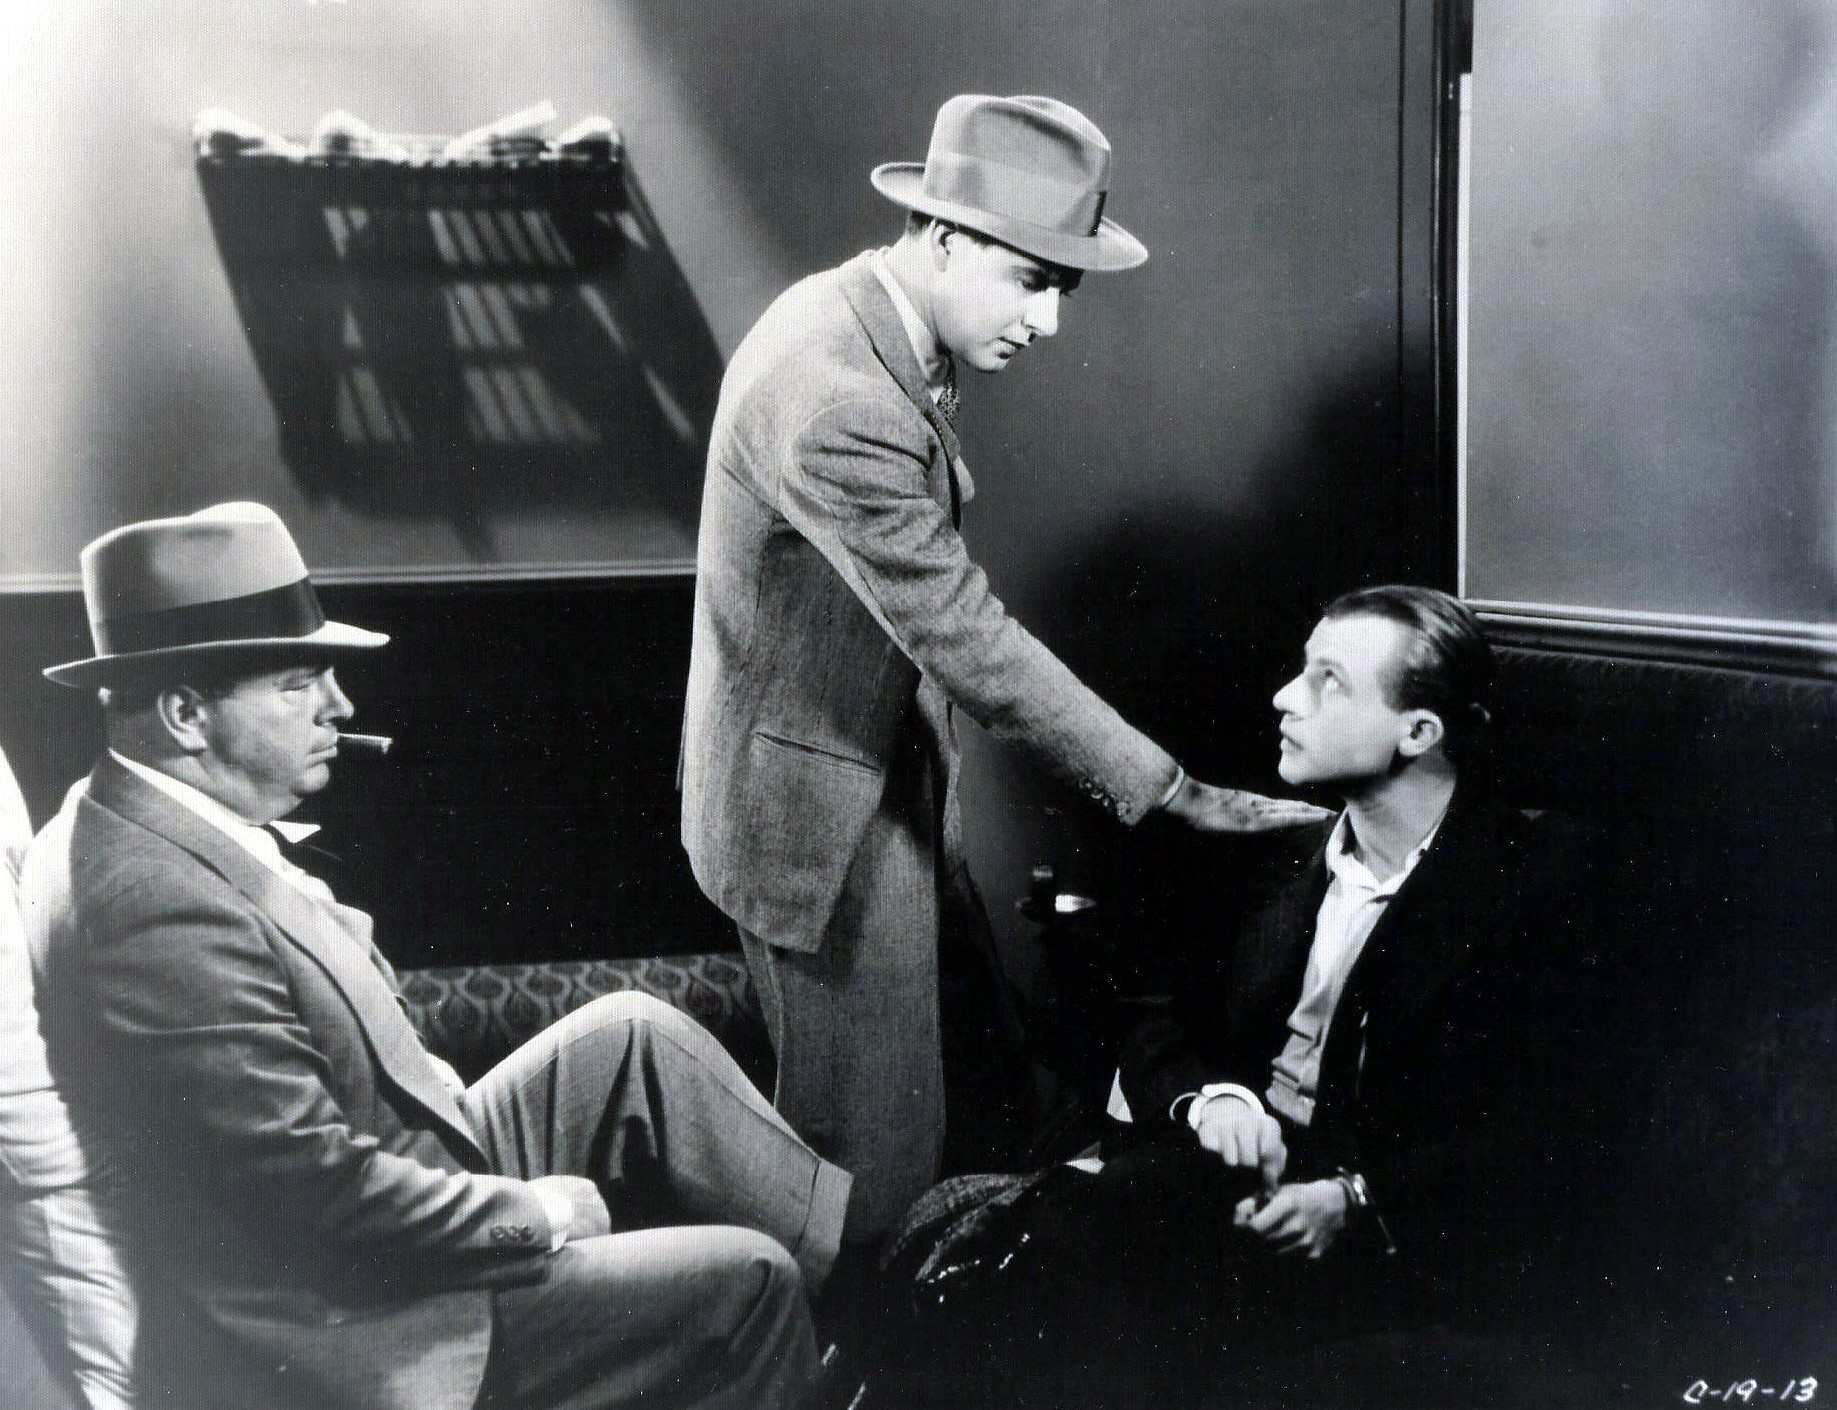 Dwight Frye, Ben Lyon, and William V. Mong in By Whose Hand? (1932)